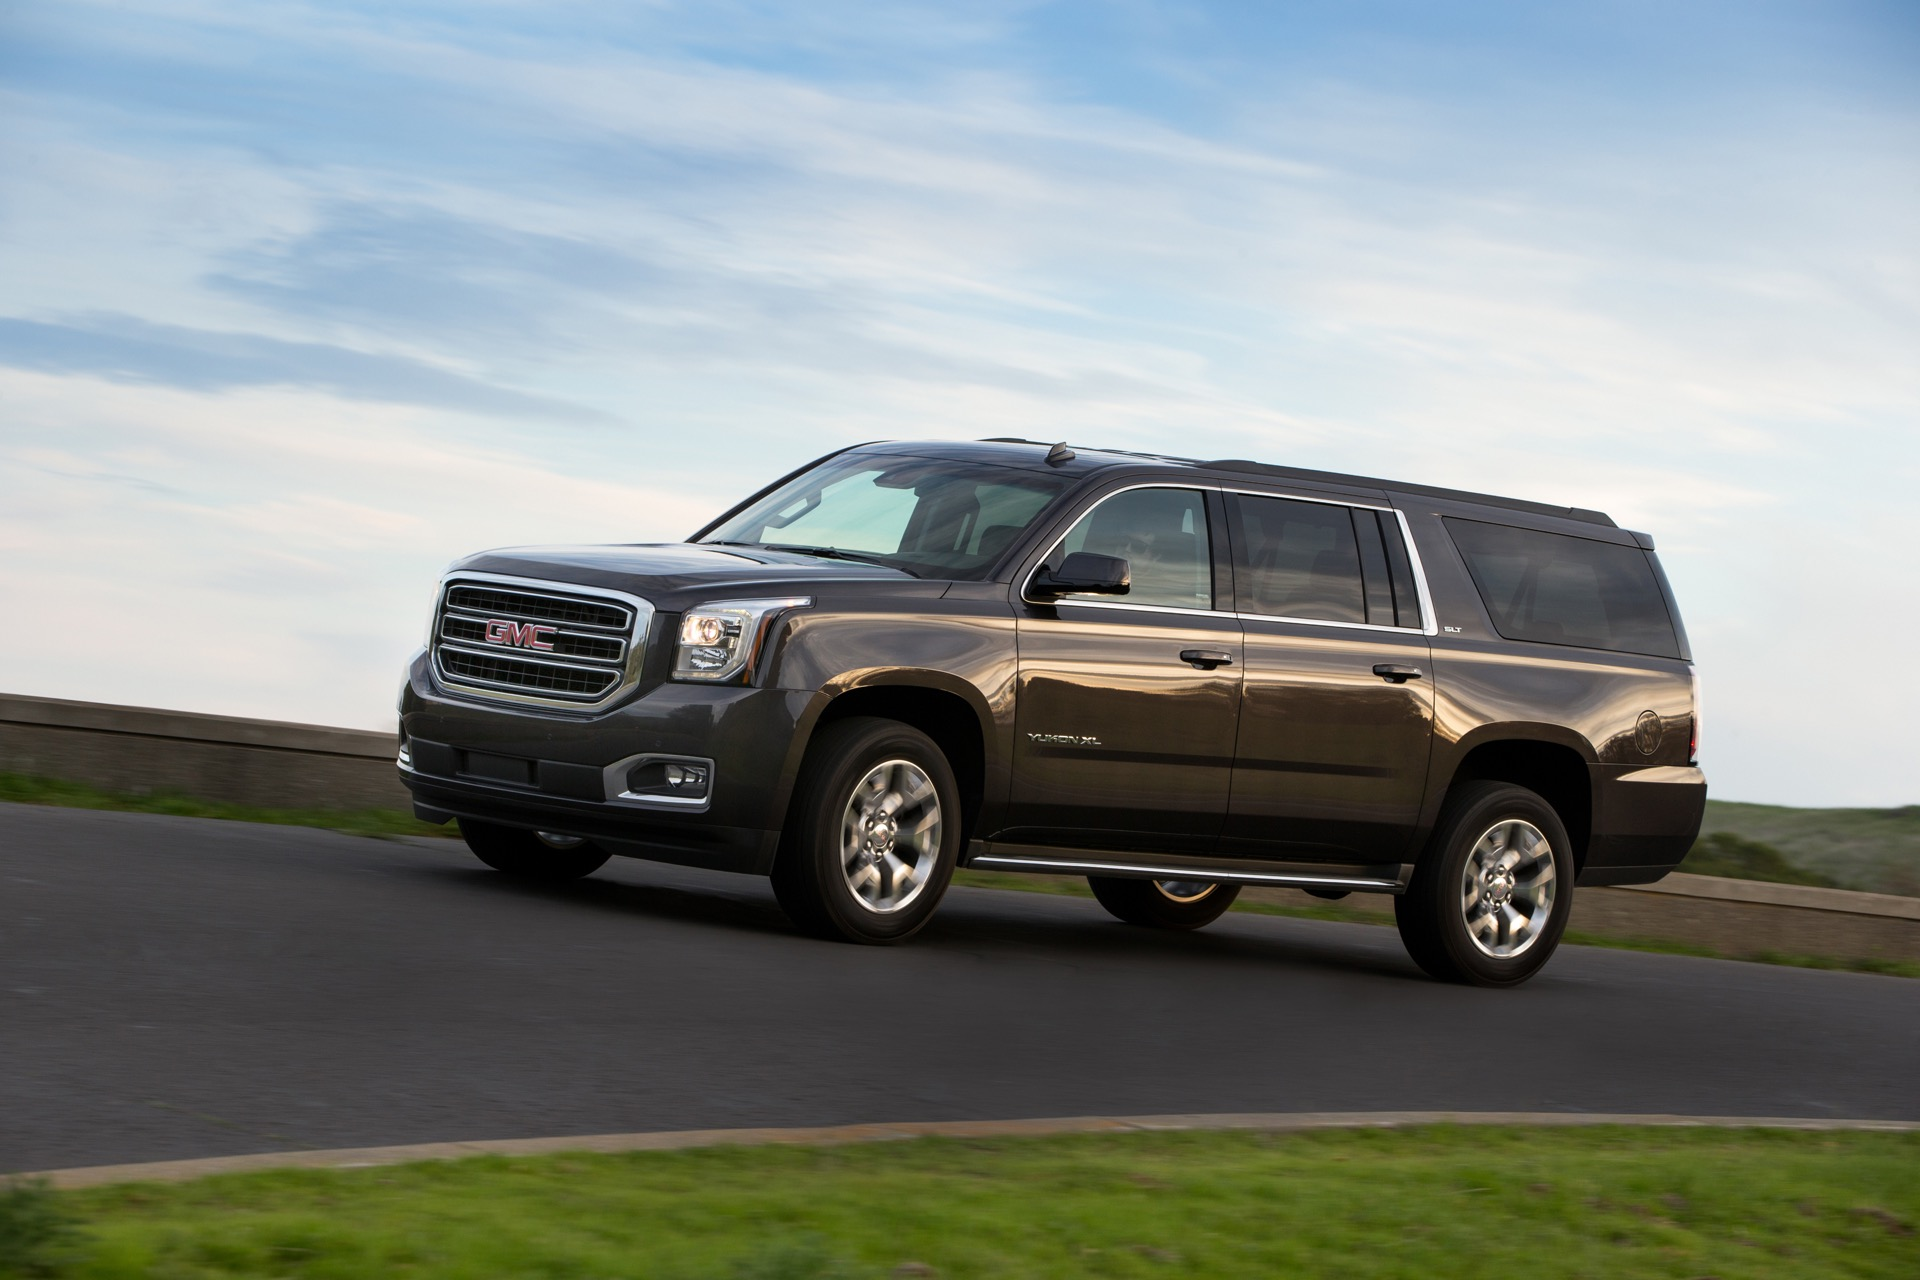 2016 Gmc Sierra 2500hd Crew Cab >> Comparison - GMC Yukon Denali 2016 - vs - GMC Sierra 2500HD Crew Cab Base 2015 | SUV Drive